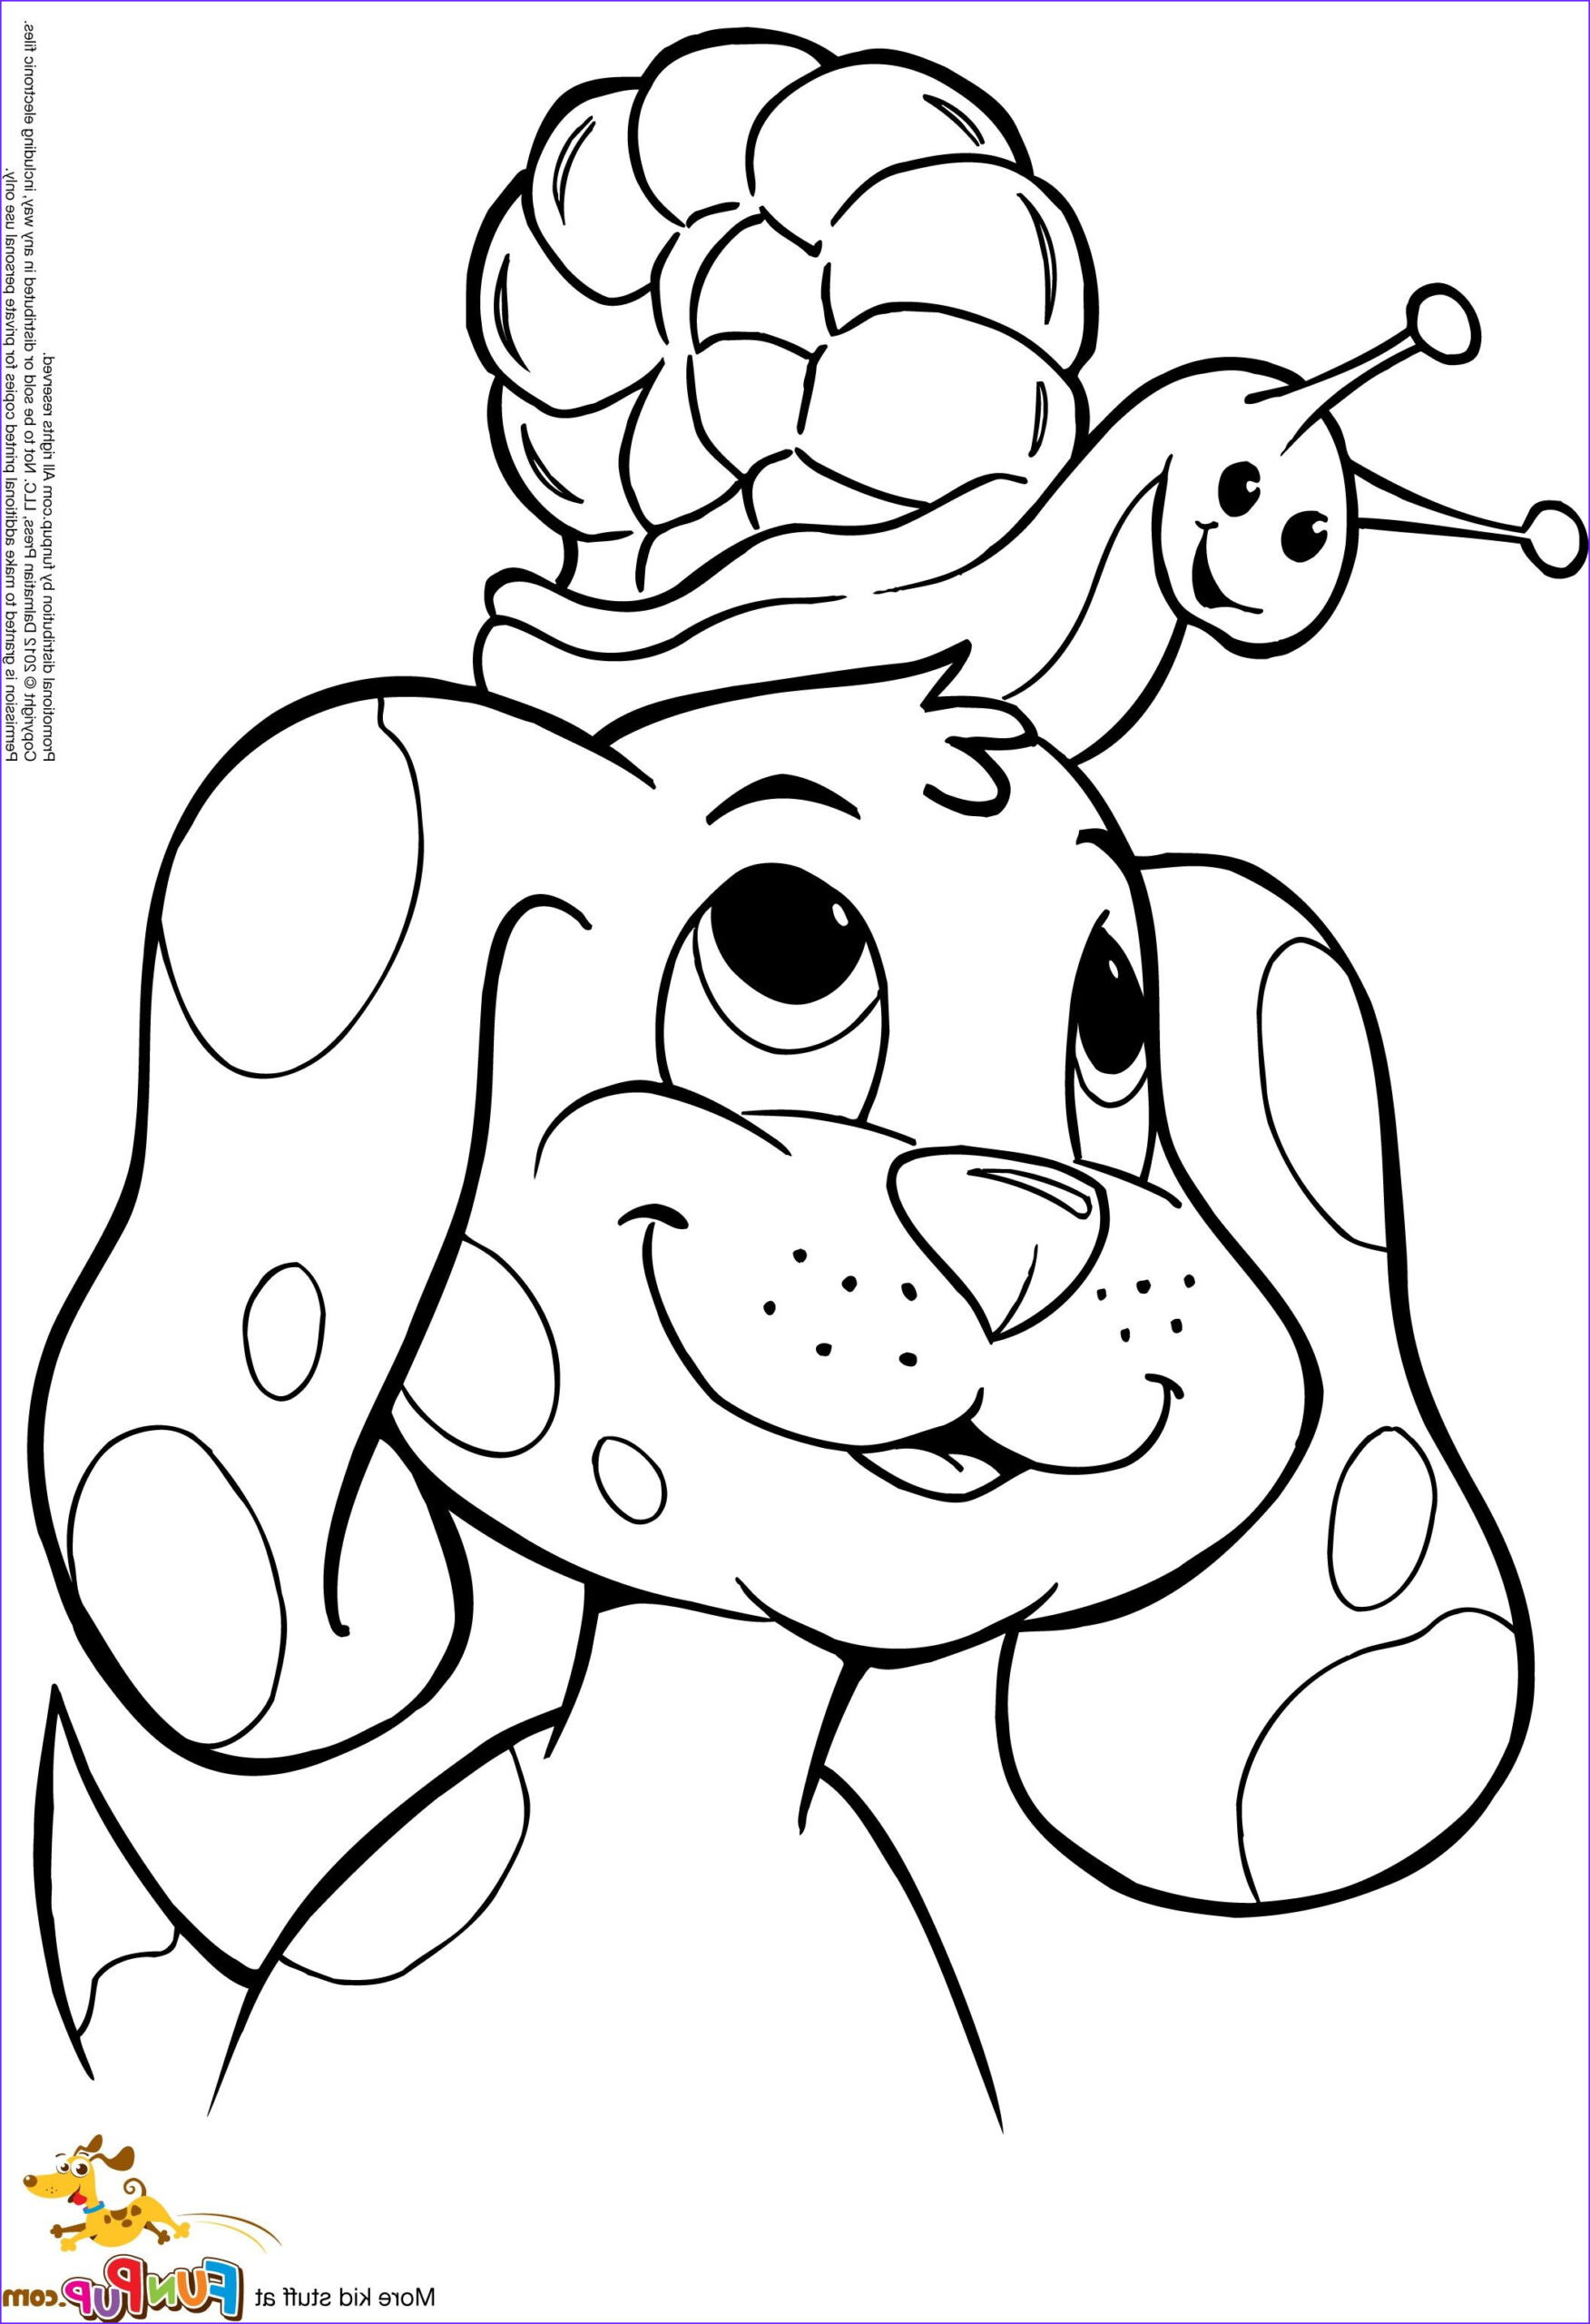 Puppy Coloring Book Cool Collection Puppy 1 0 Colouring Pages Clip Art Miscellaneous